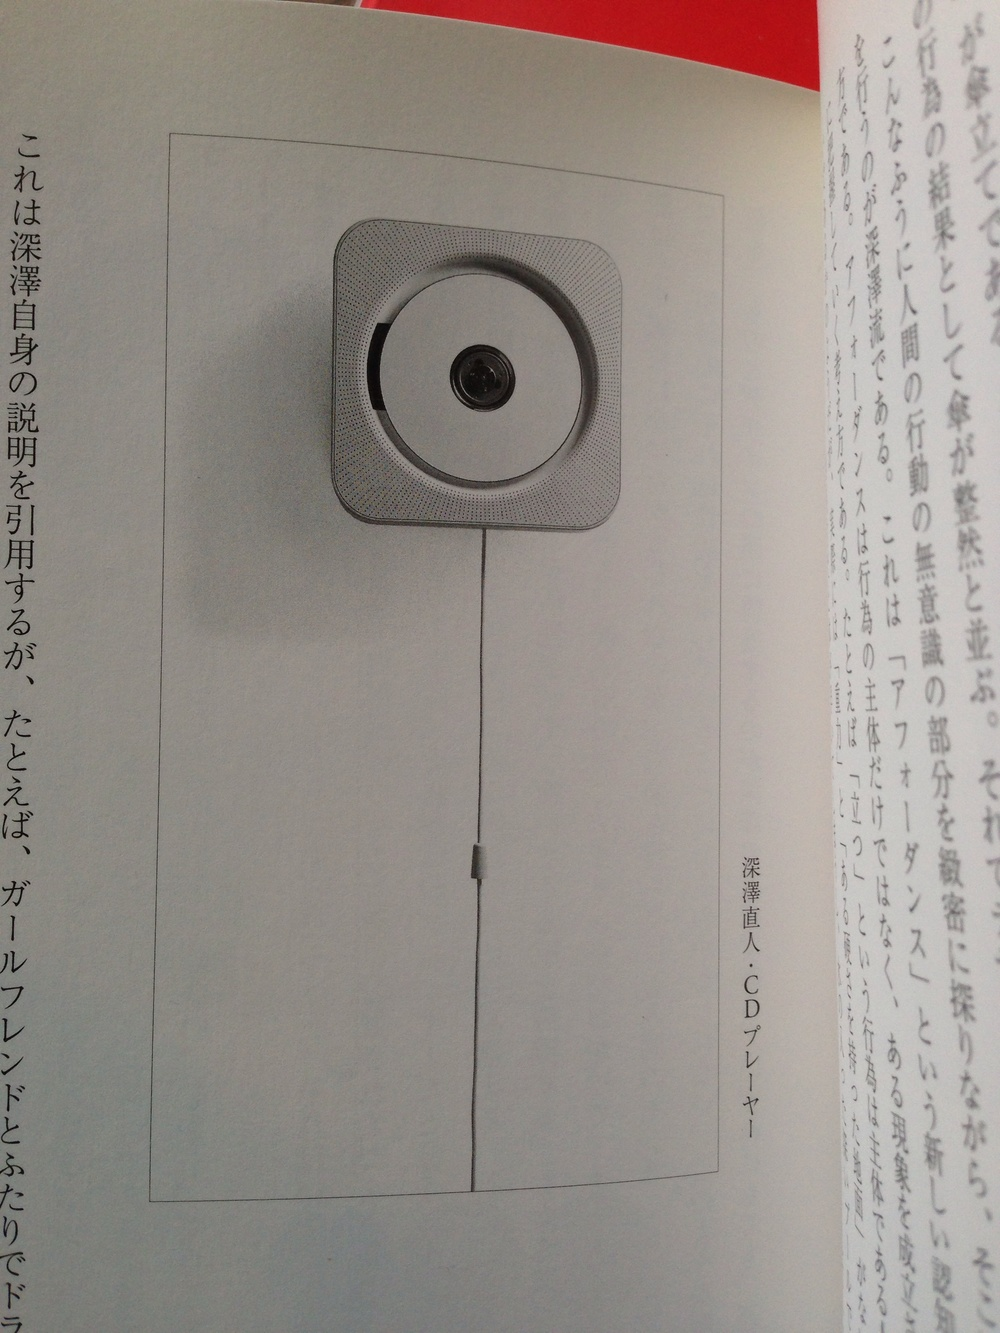 This CD player looks like the Nest Protect doesn't it?